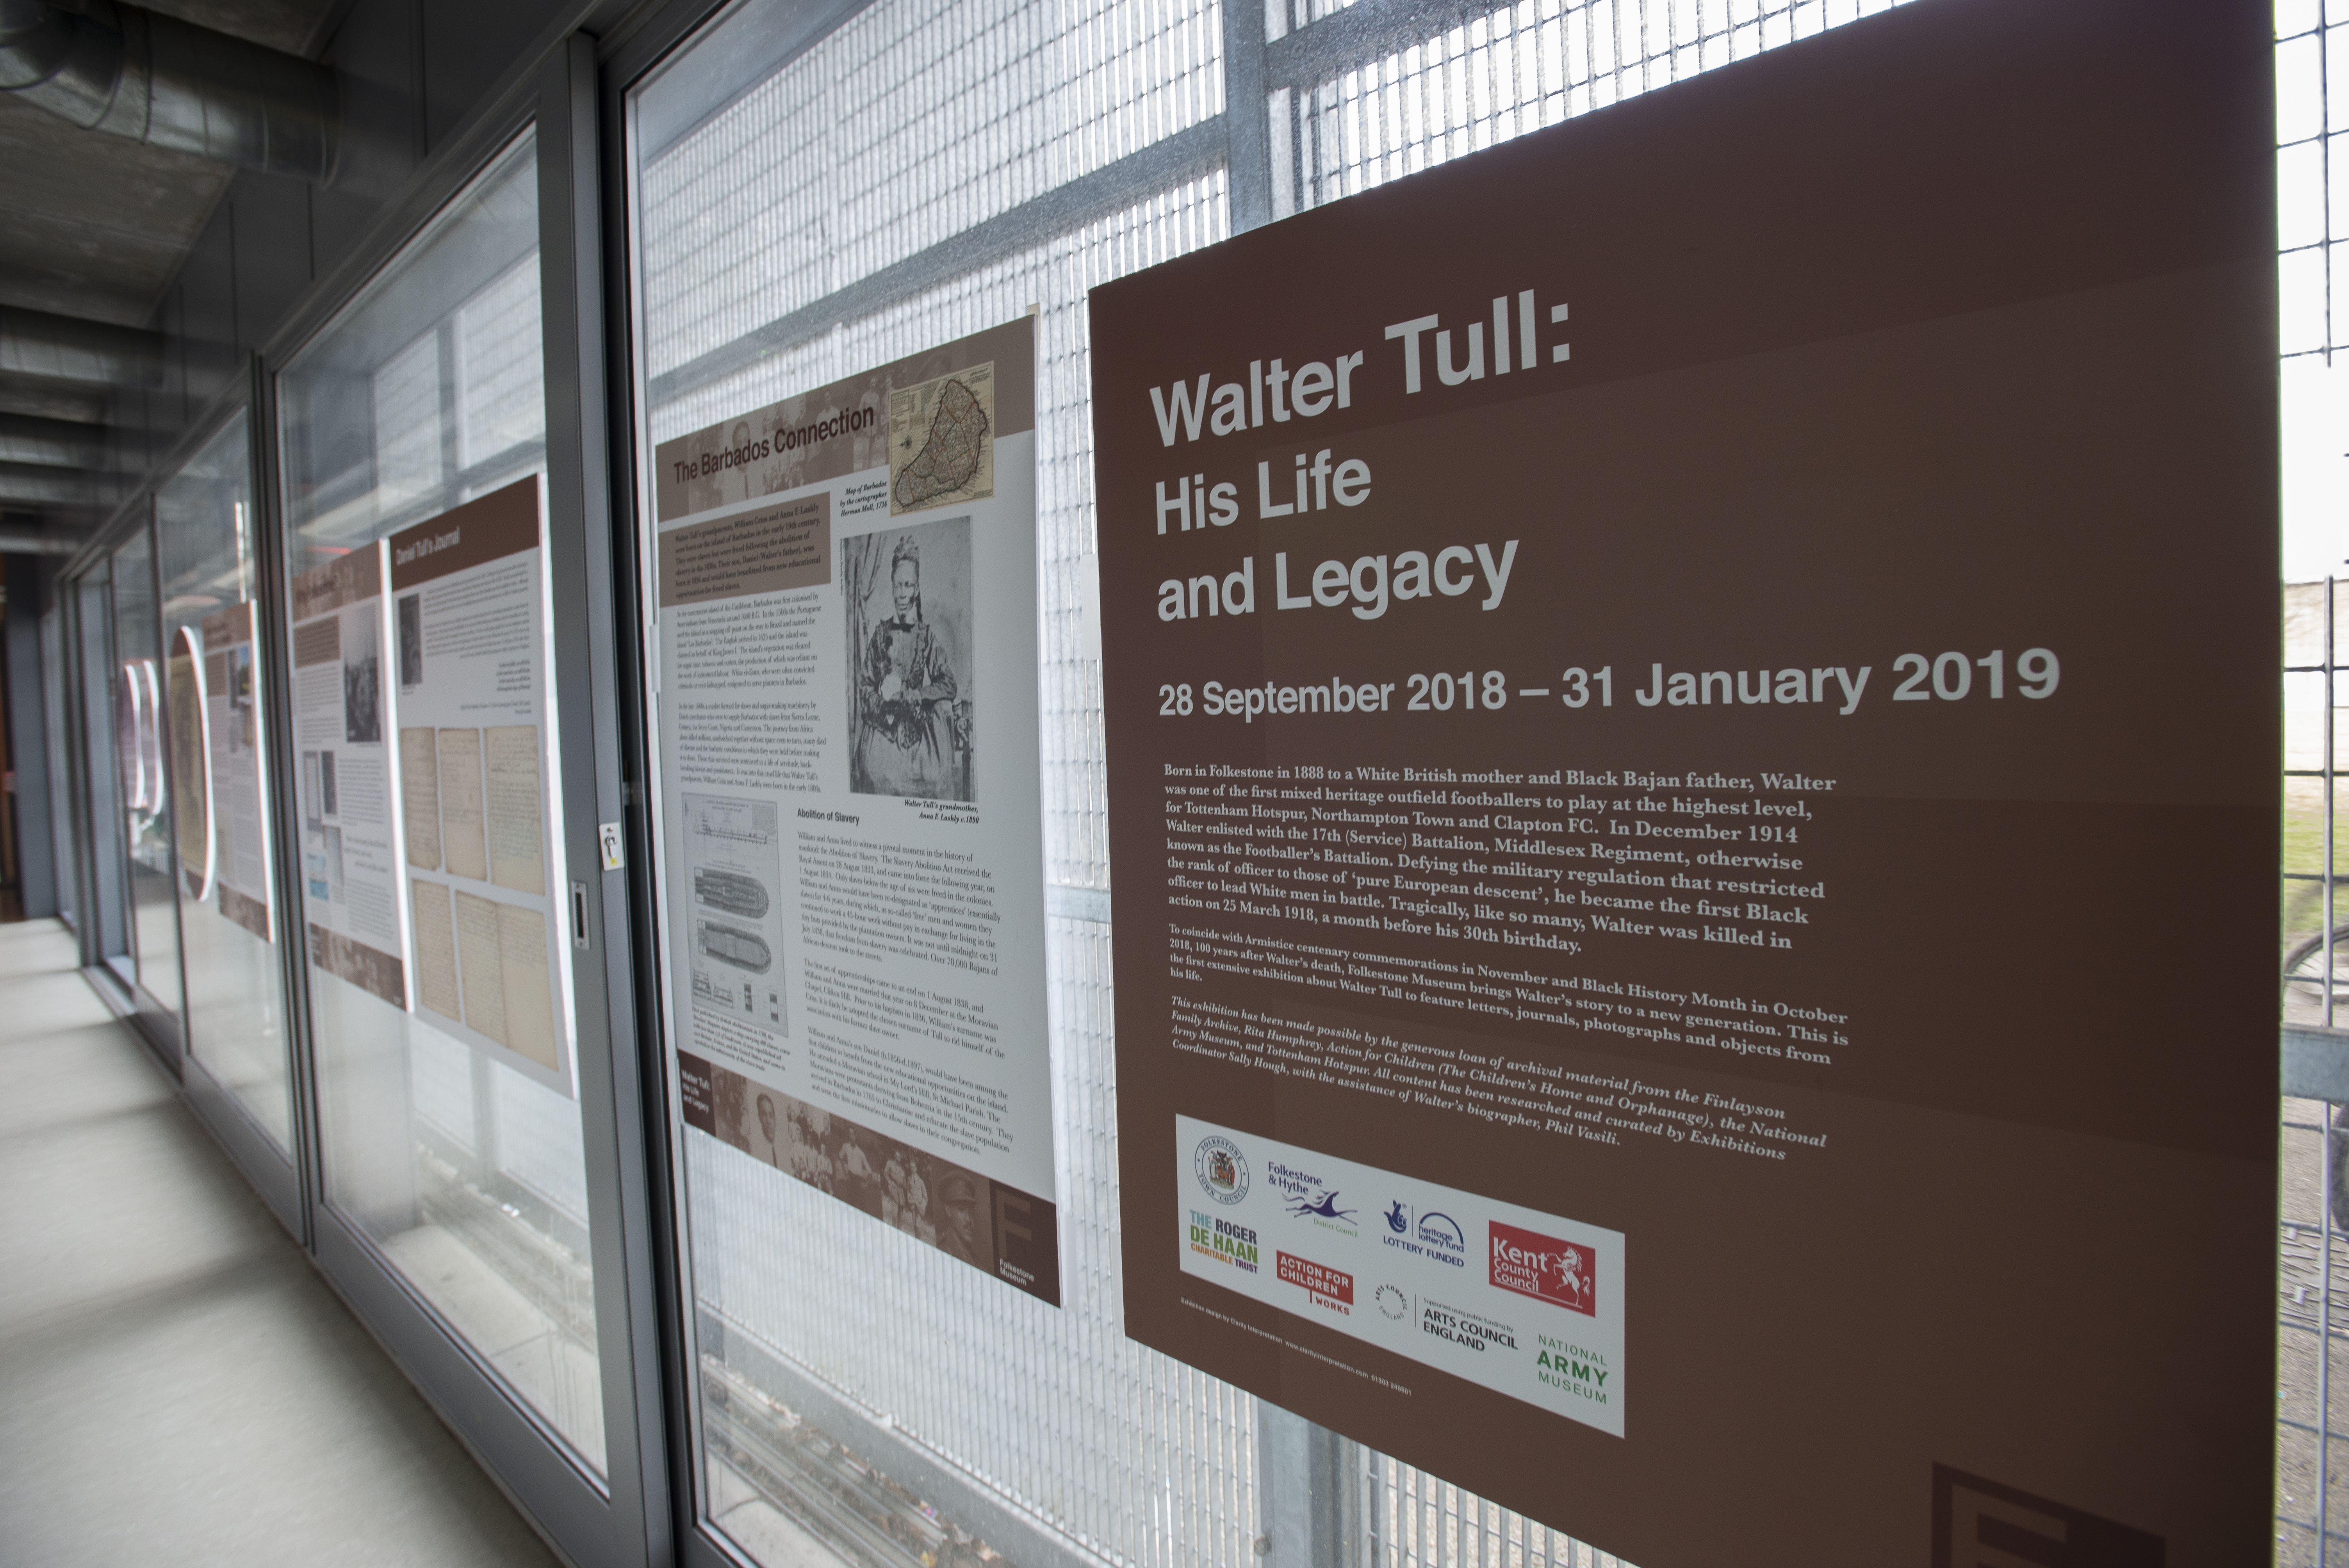 Walter Tull exhibition - Exhibition panels